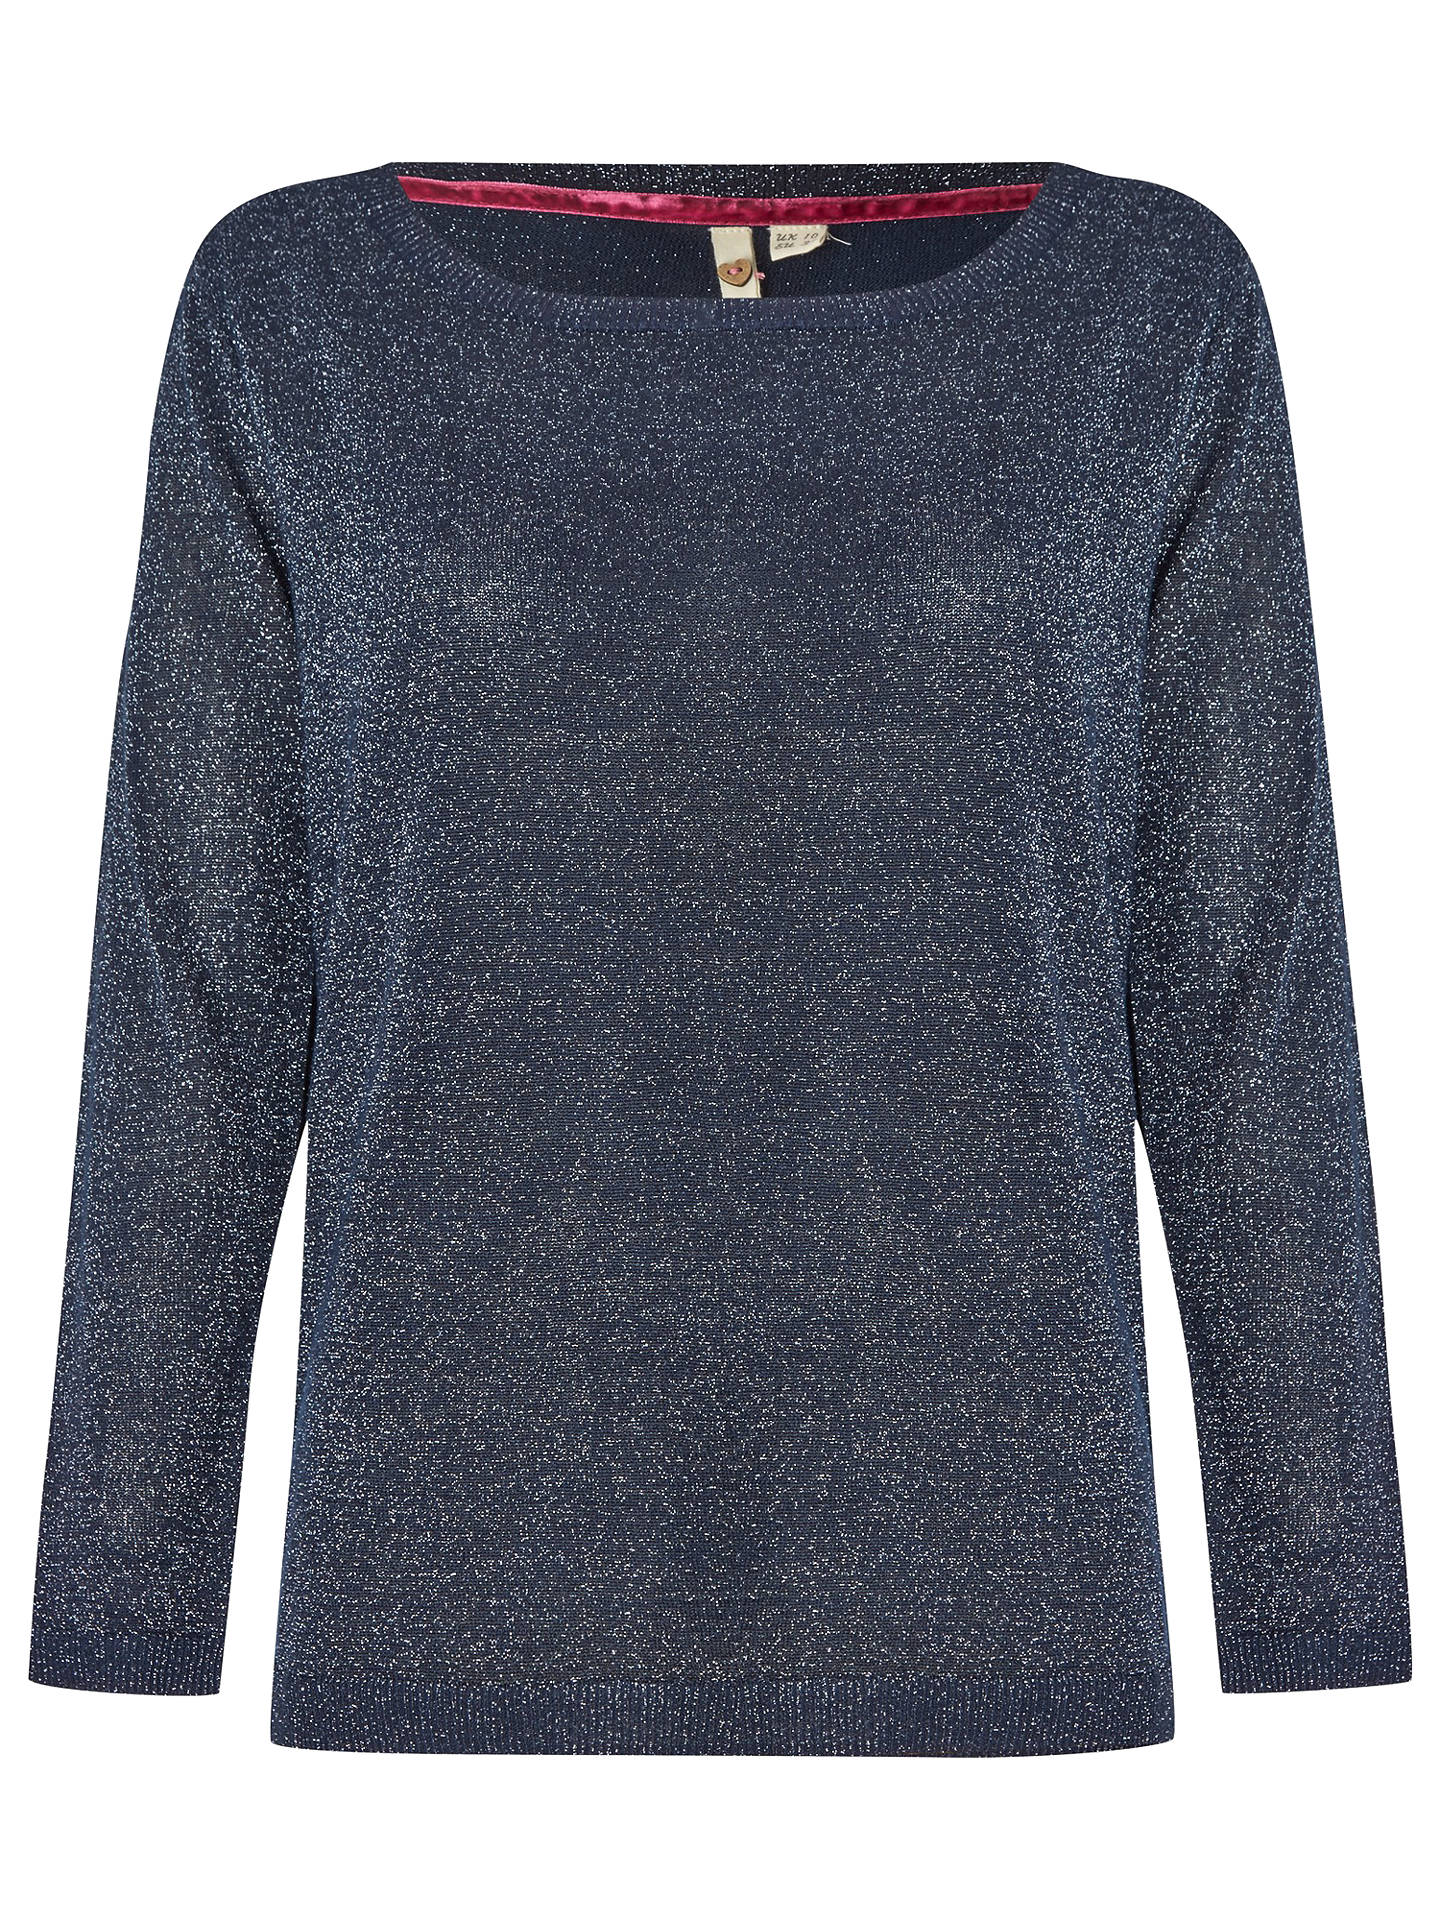 BuyWhite Stuff Astonish Jumper, Navy, 6 Online at johnlewis.com